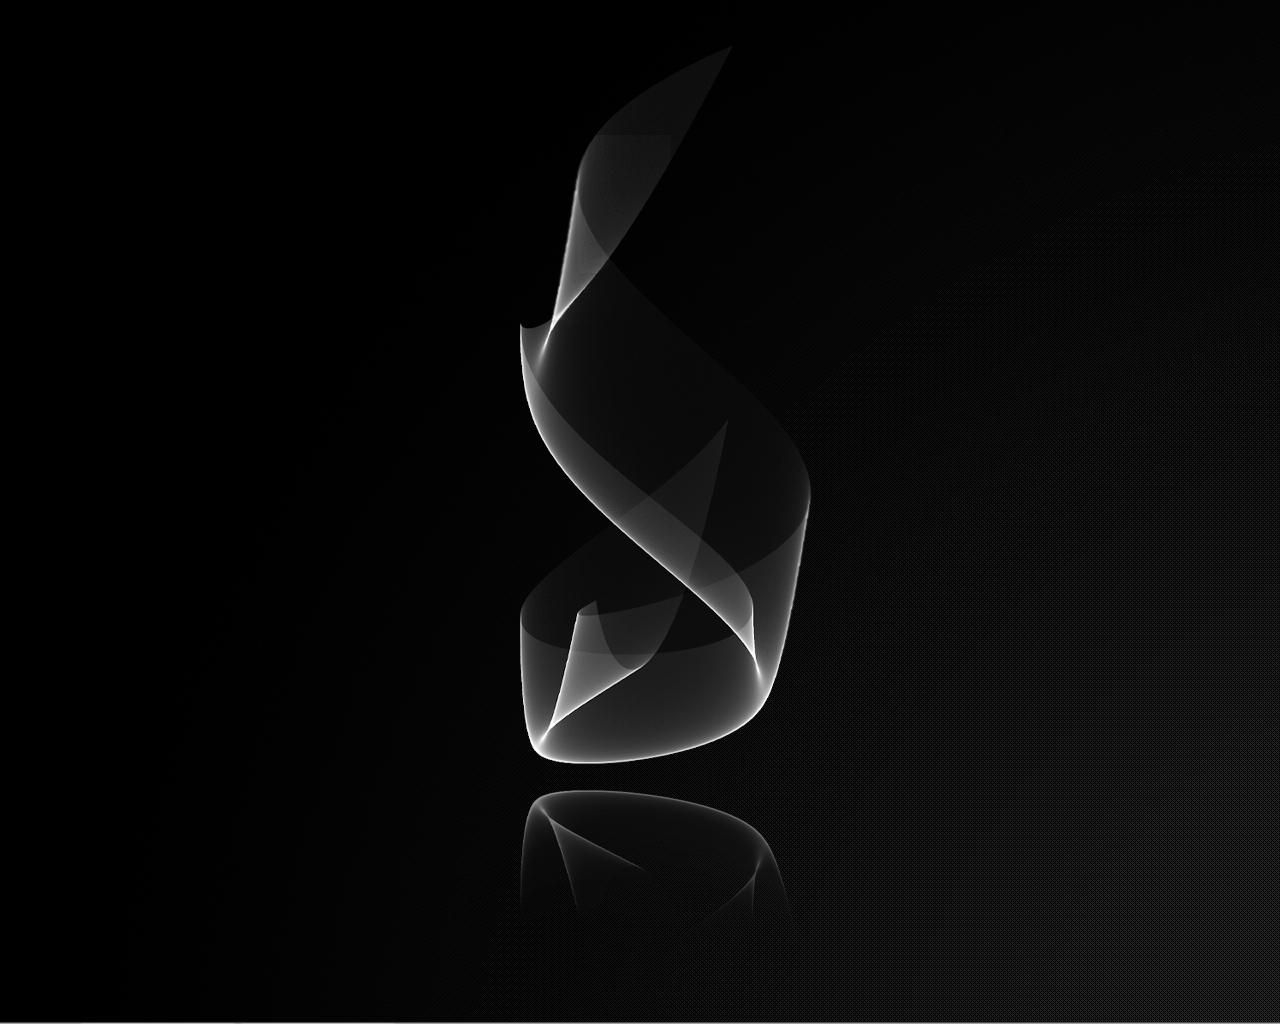 dark abstract wallpapers amditechnology